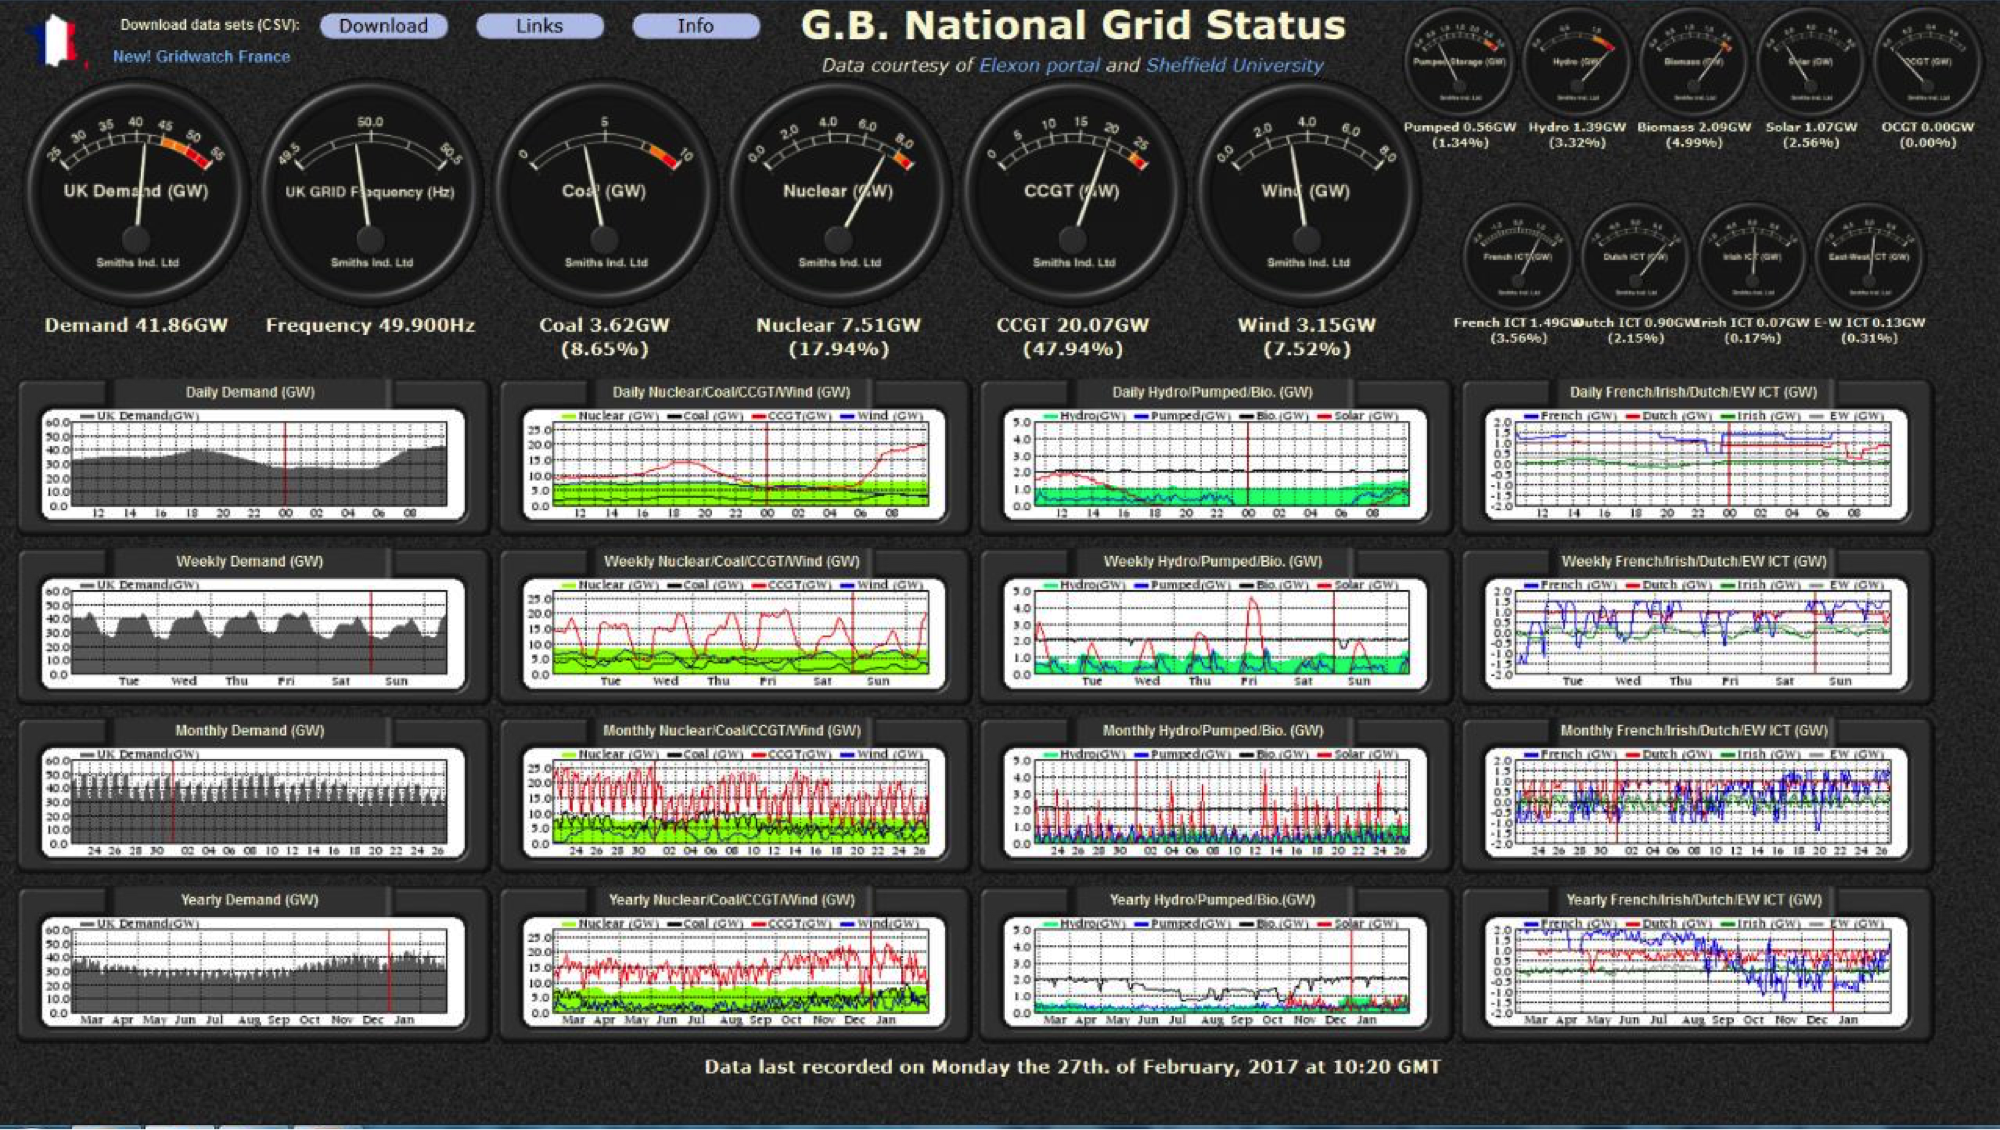 UK power supply at a glance